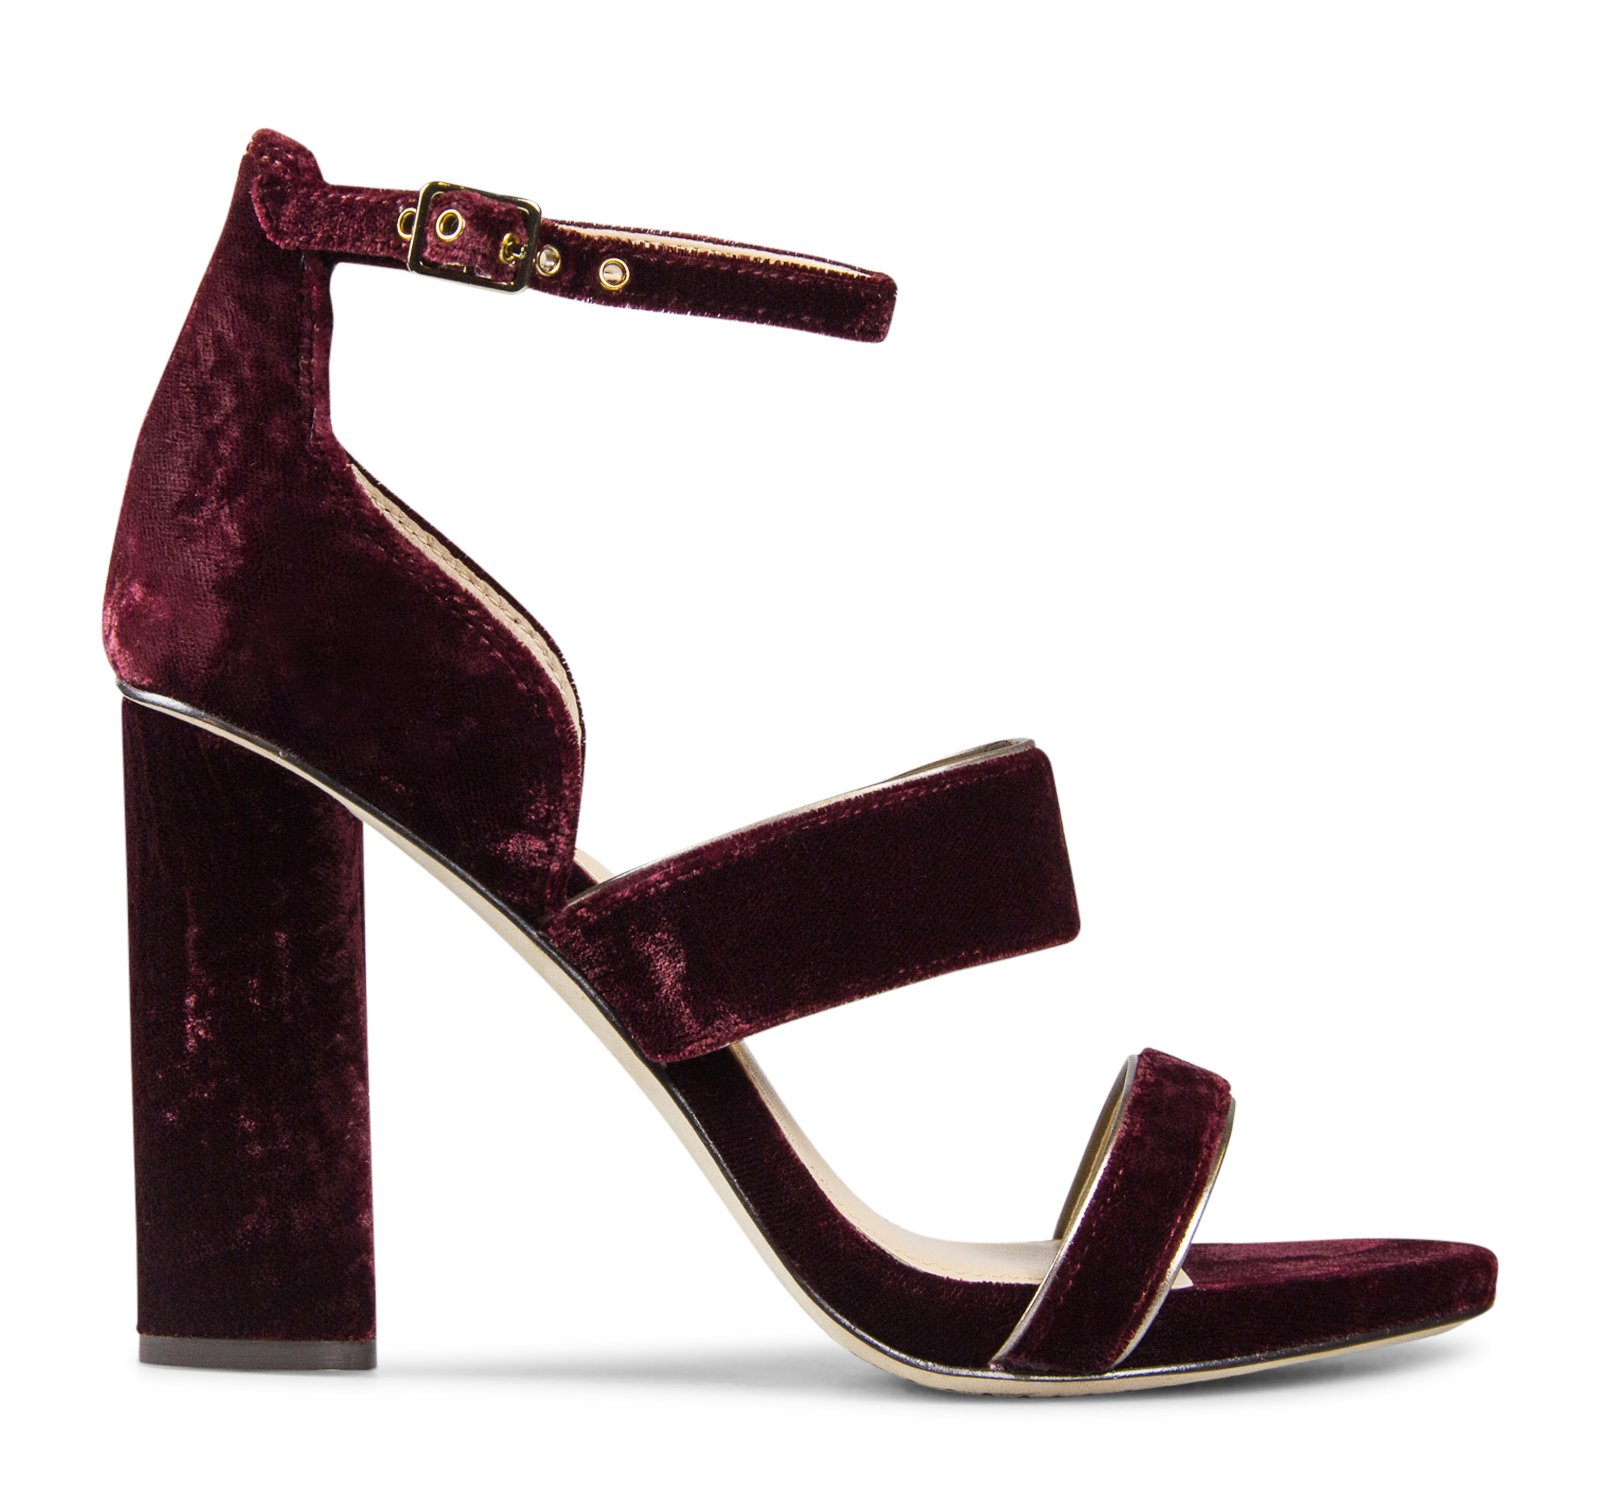 f4c38ef0ddf8 Vince Camuto Womens robeka Open Toe Casual Ankle Strap Sandals ...